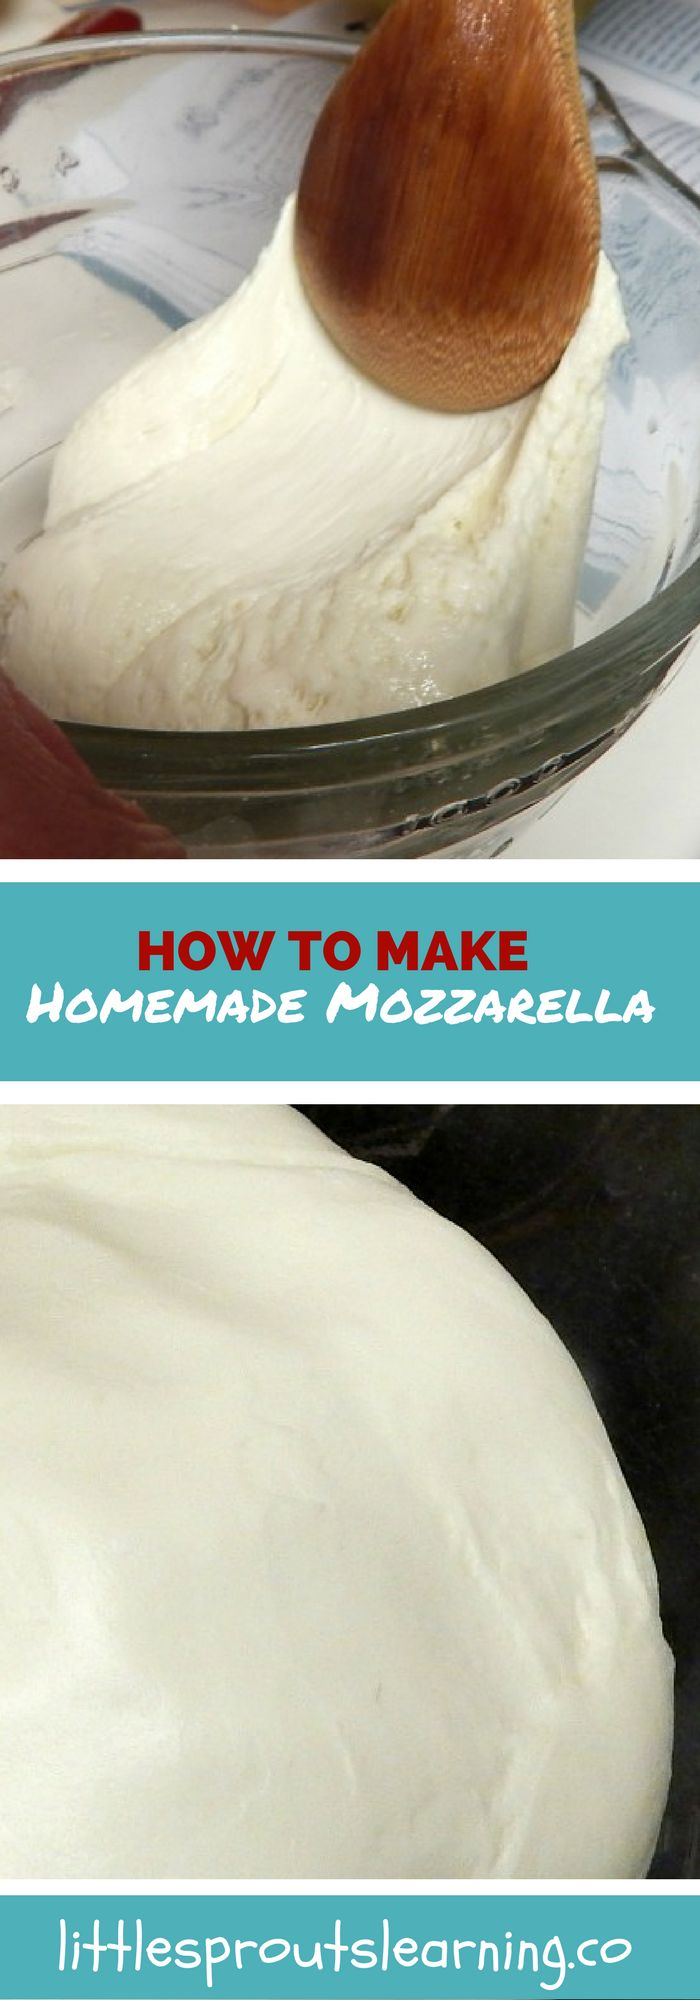 Making homemade cheese is not as hard as it may sound. Mozzarella is by far the easiest cheese I have made. It takes no special equipment.